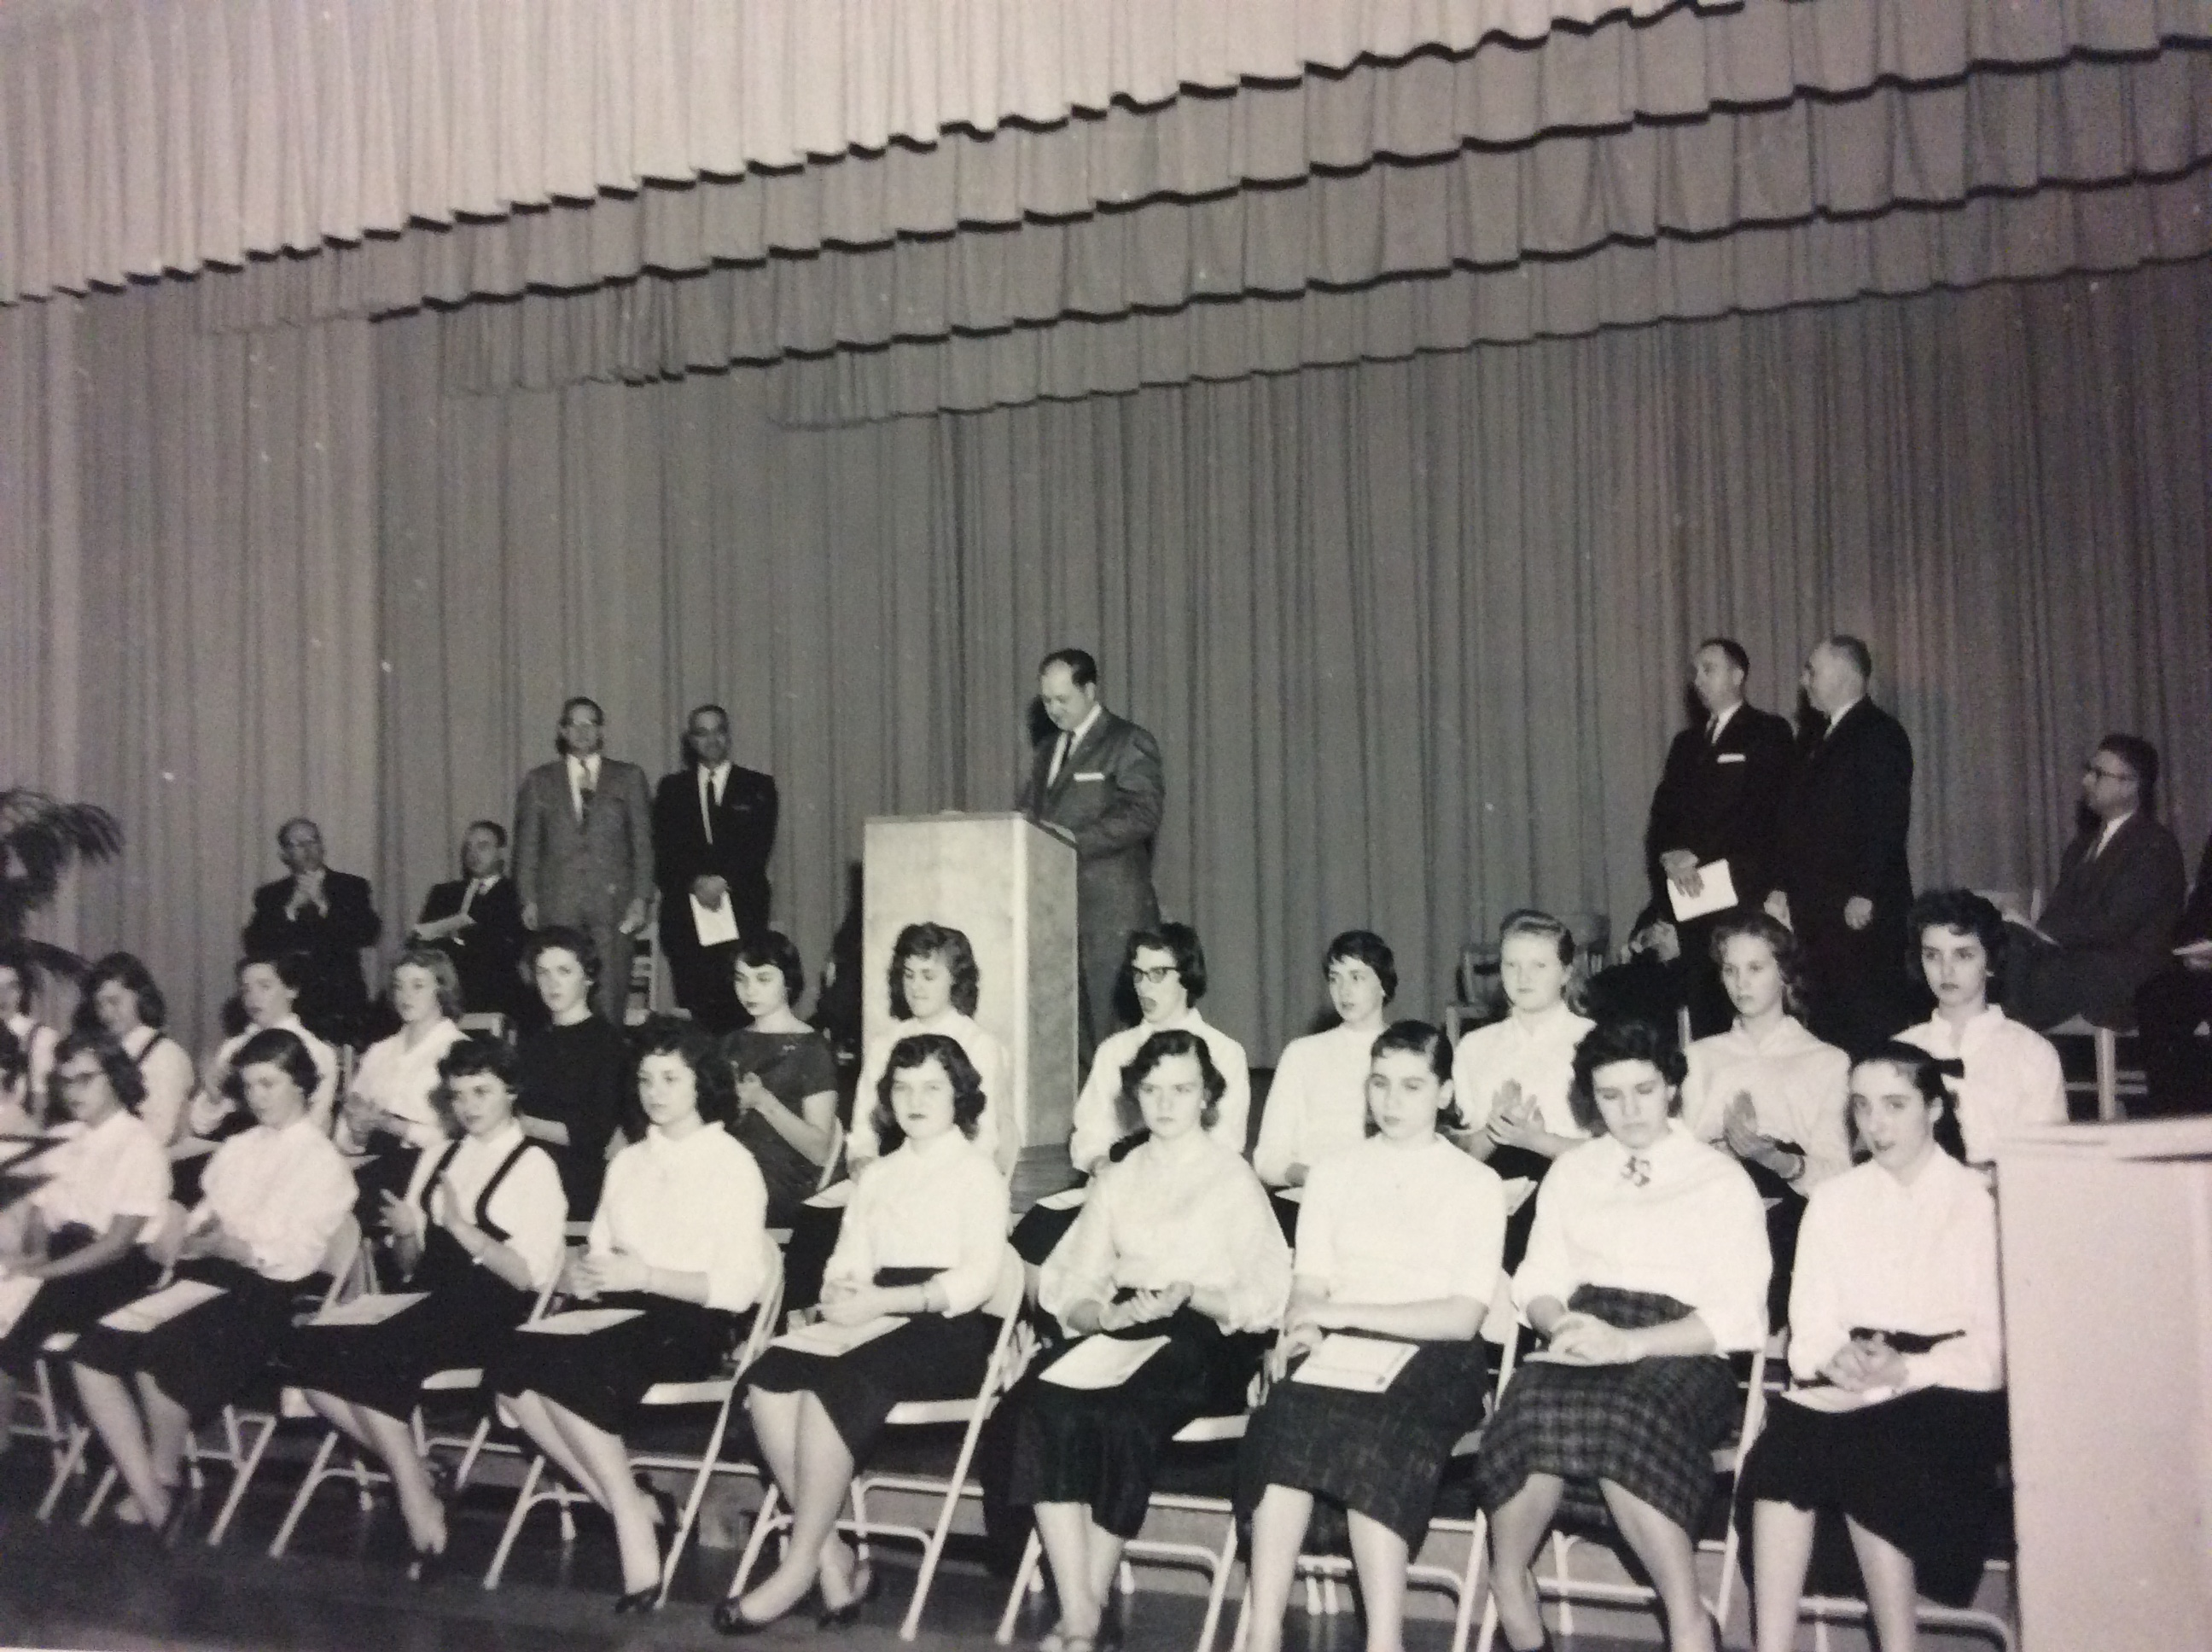 Photo of students from the dedication of the West Boylston High School